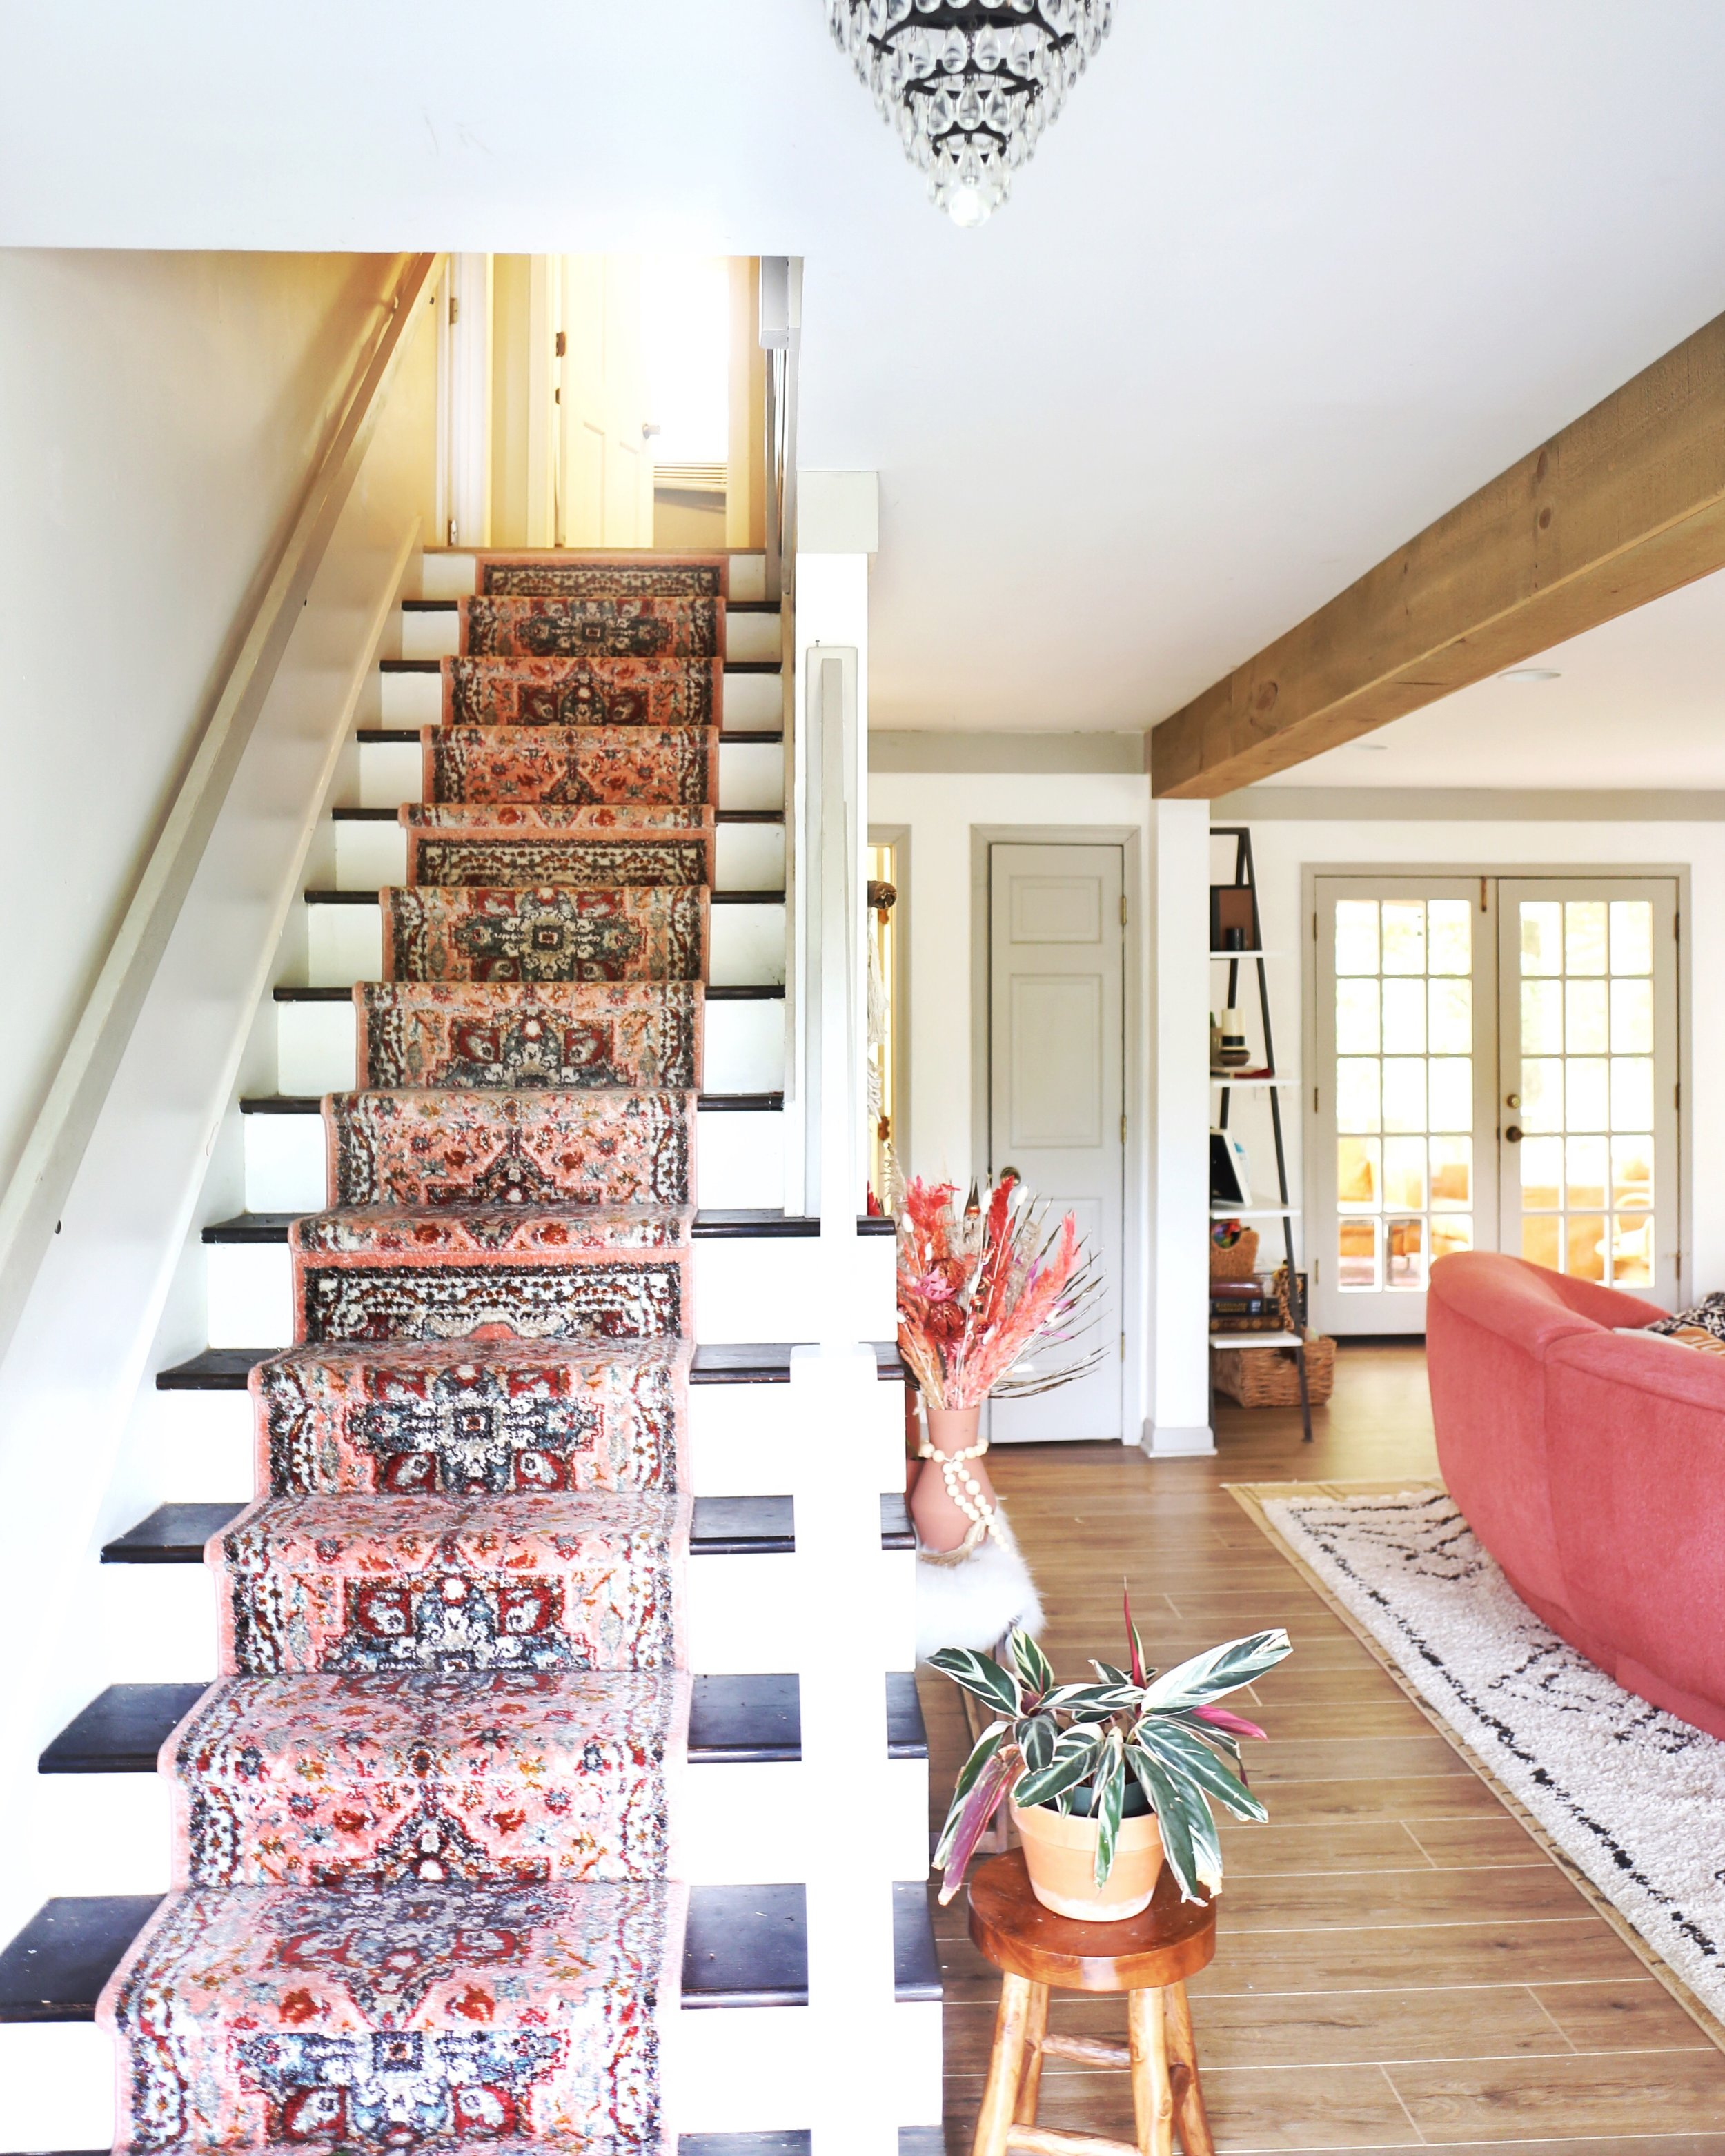 - How to Replace Old Carpet on Stairs with an Inexpensive Runner.